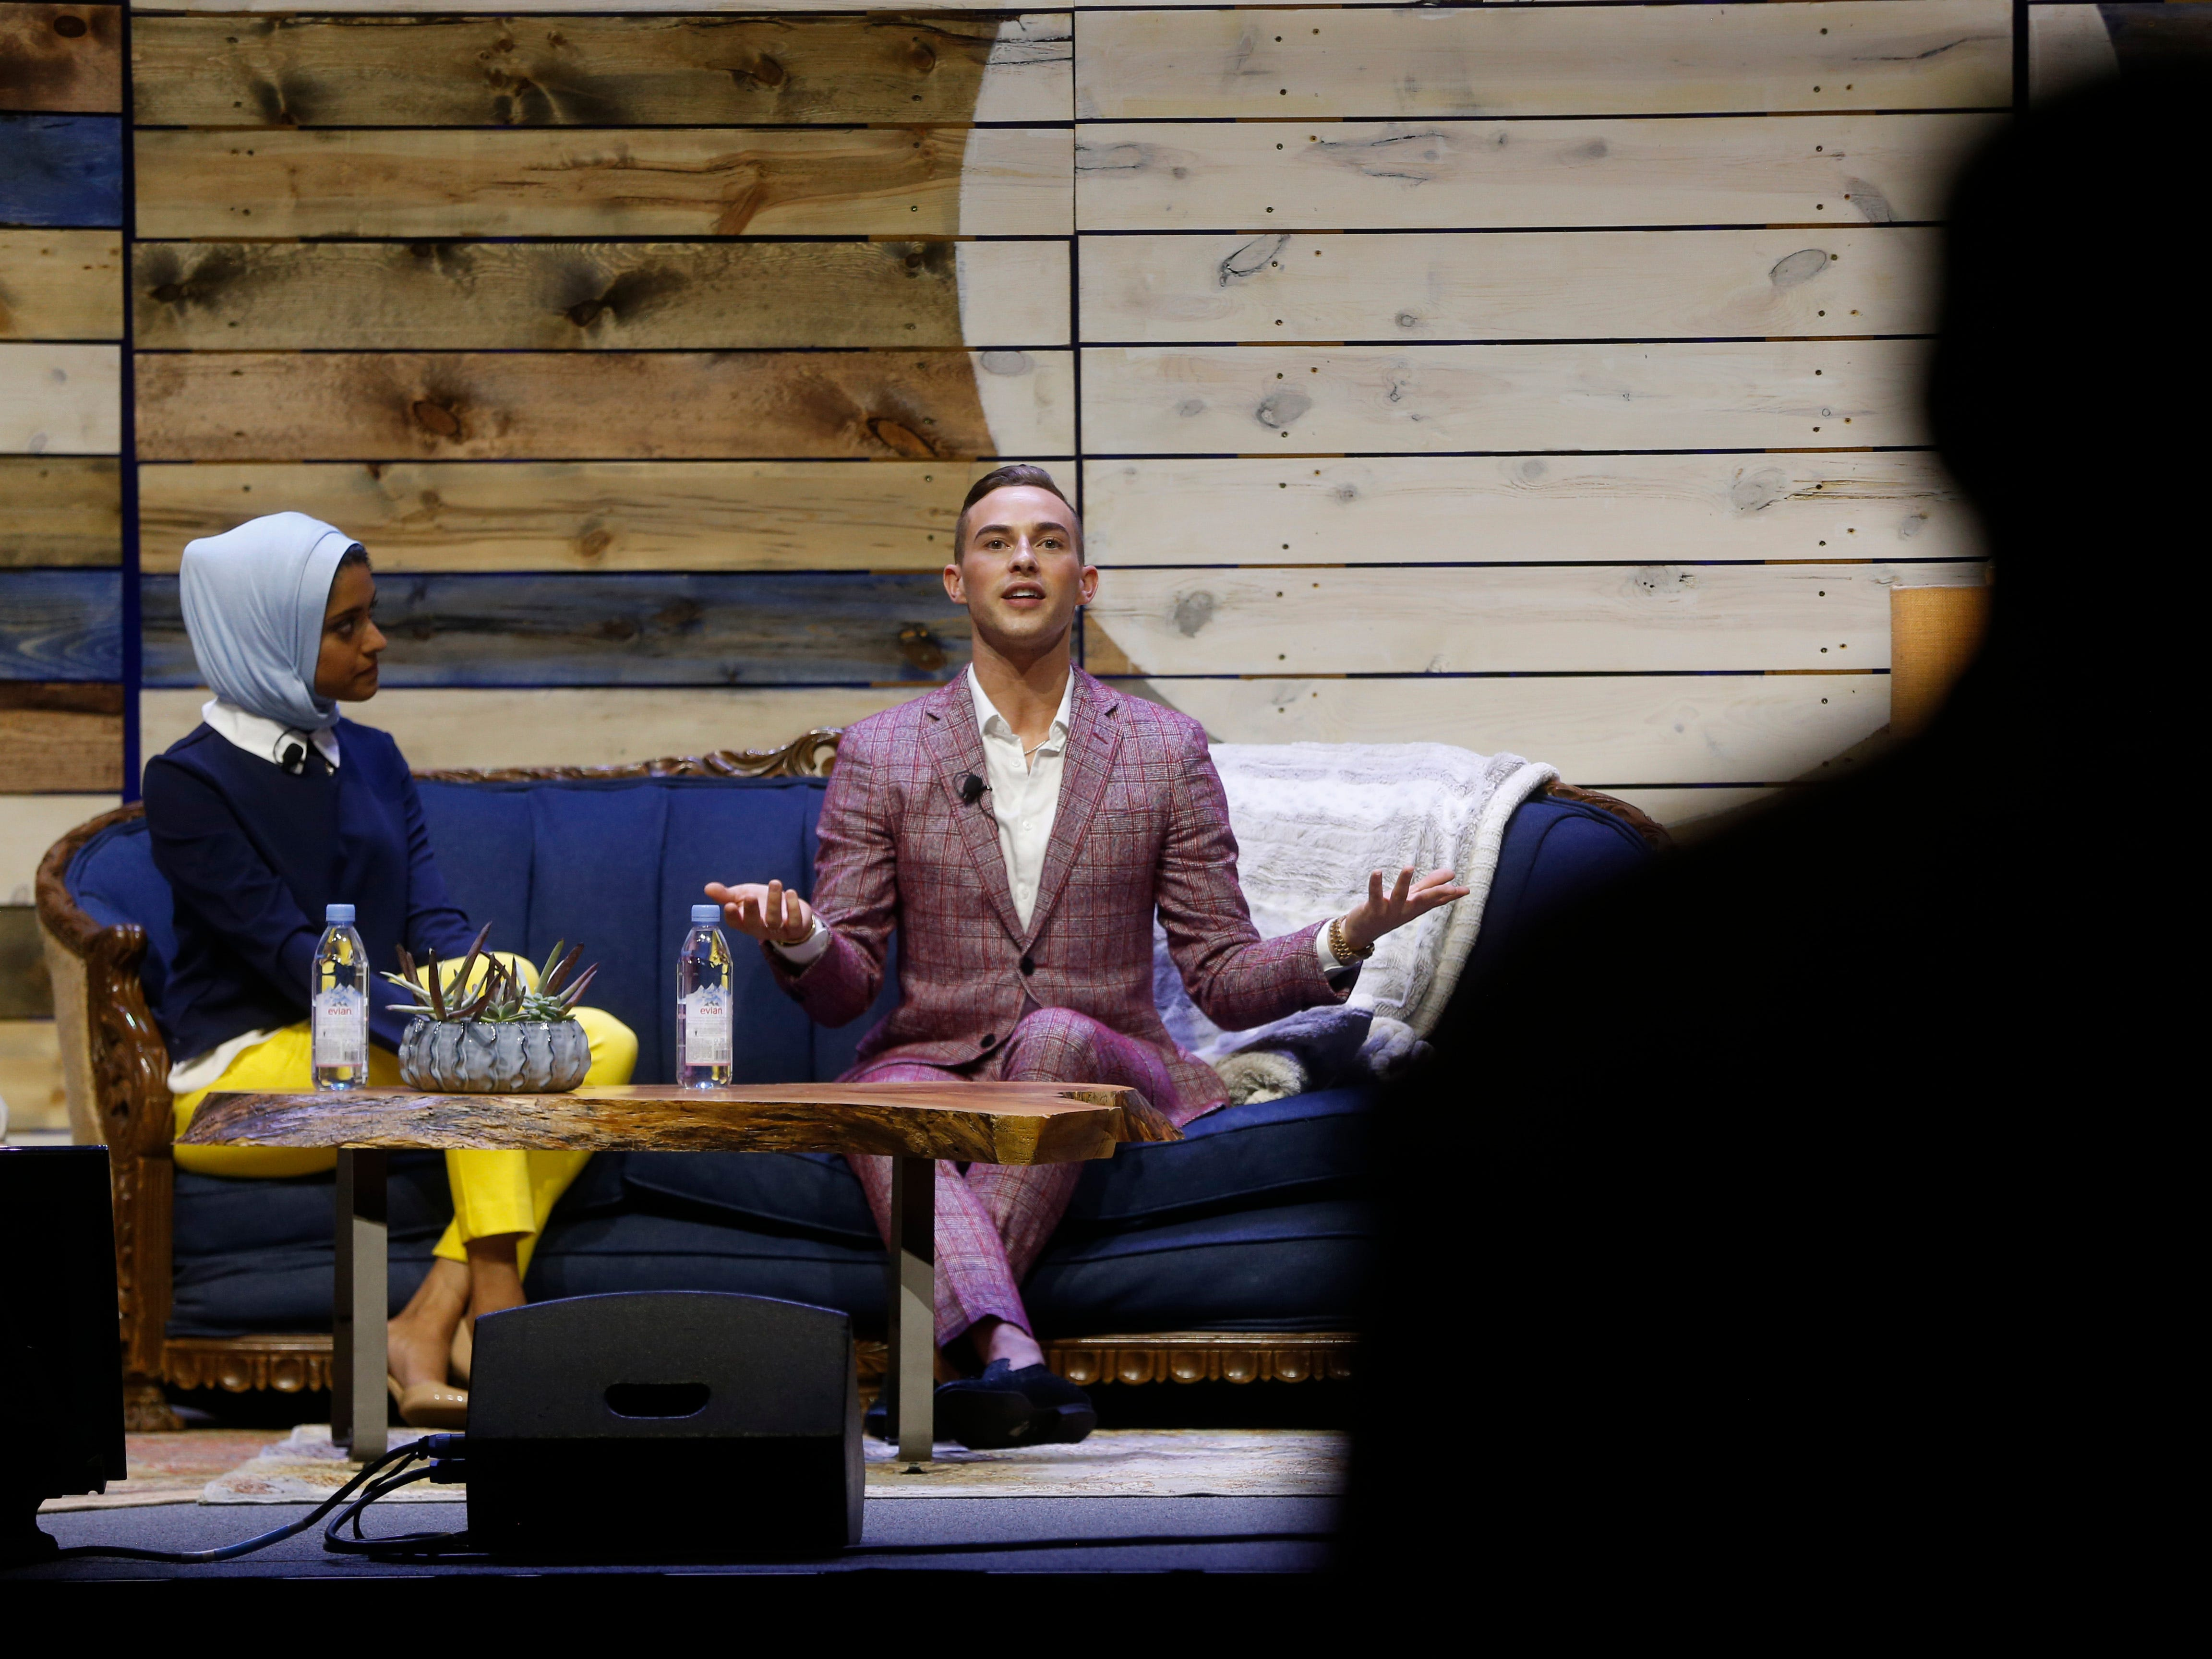 Olympic figure skater Adam Rippon (right) takes questions from the audience along side WHBF-TV reporter and moderator Tahera Rahman Saturday, Aug. 4, 2018, during a panel at Newbo Evolve, a three-day music, art and inspiration festival in Cedar Rapids, Iowa.